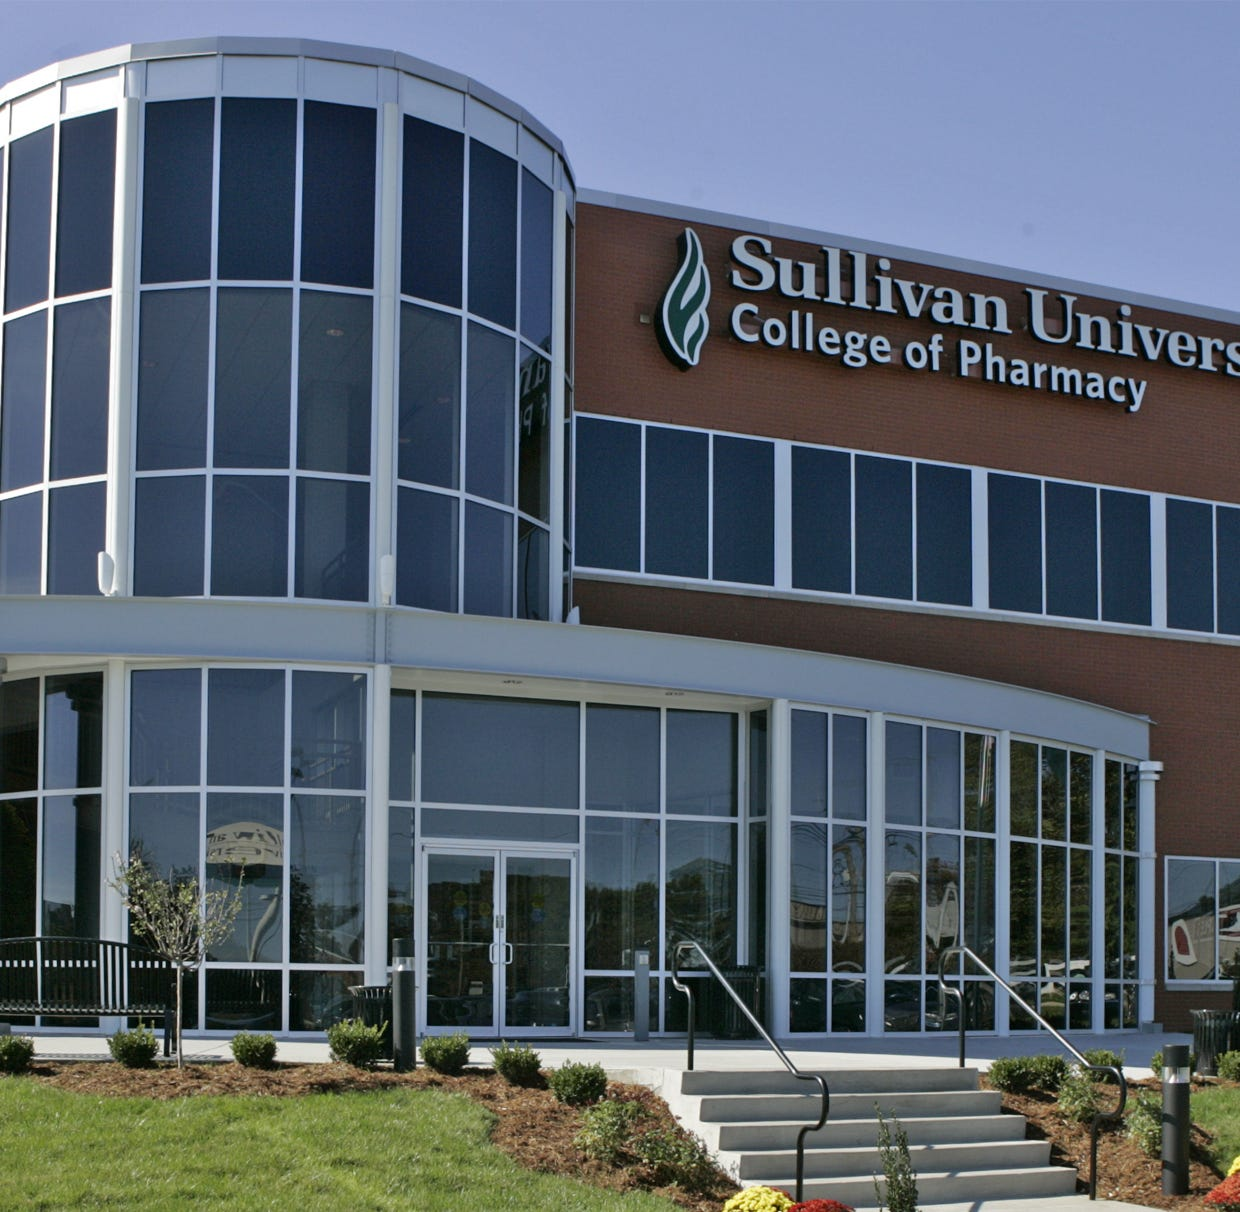 Sullivan University leaders say layoffs don't mean a sale is in works